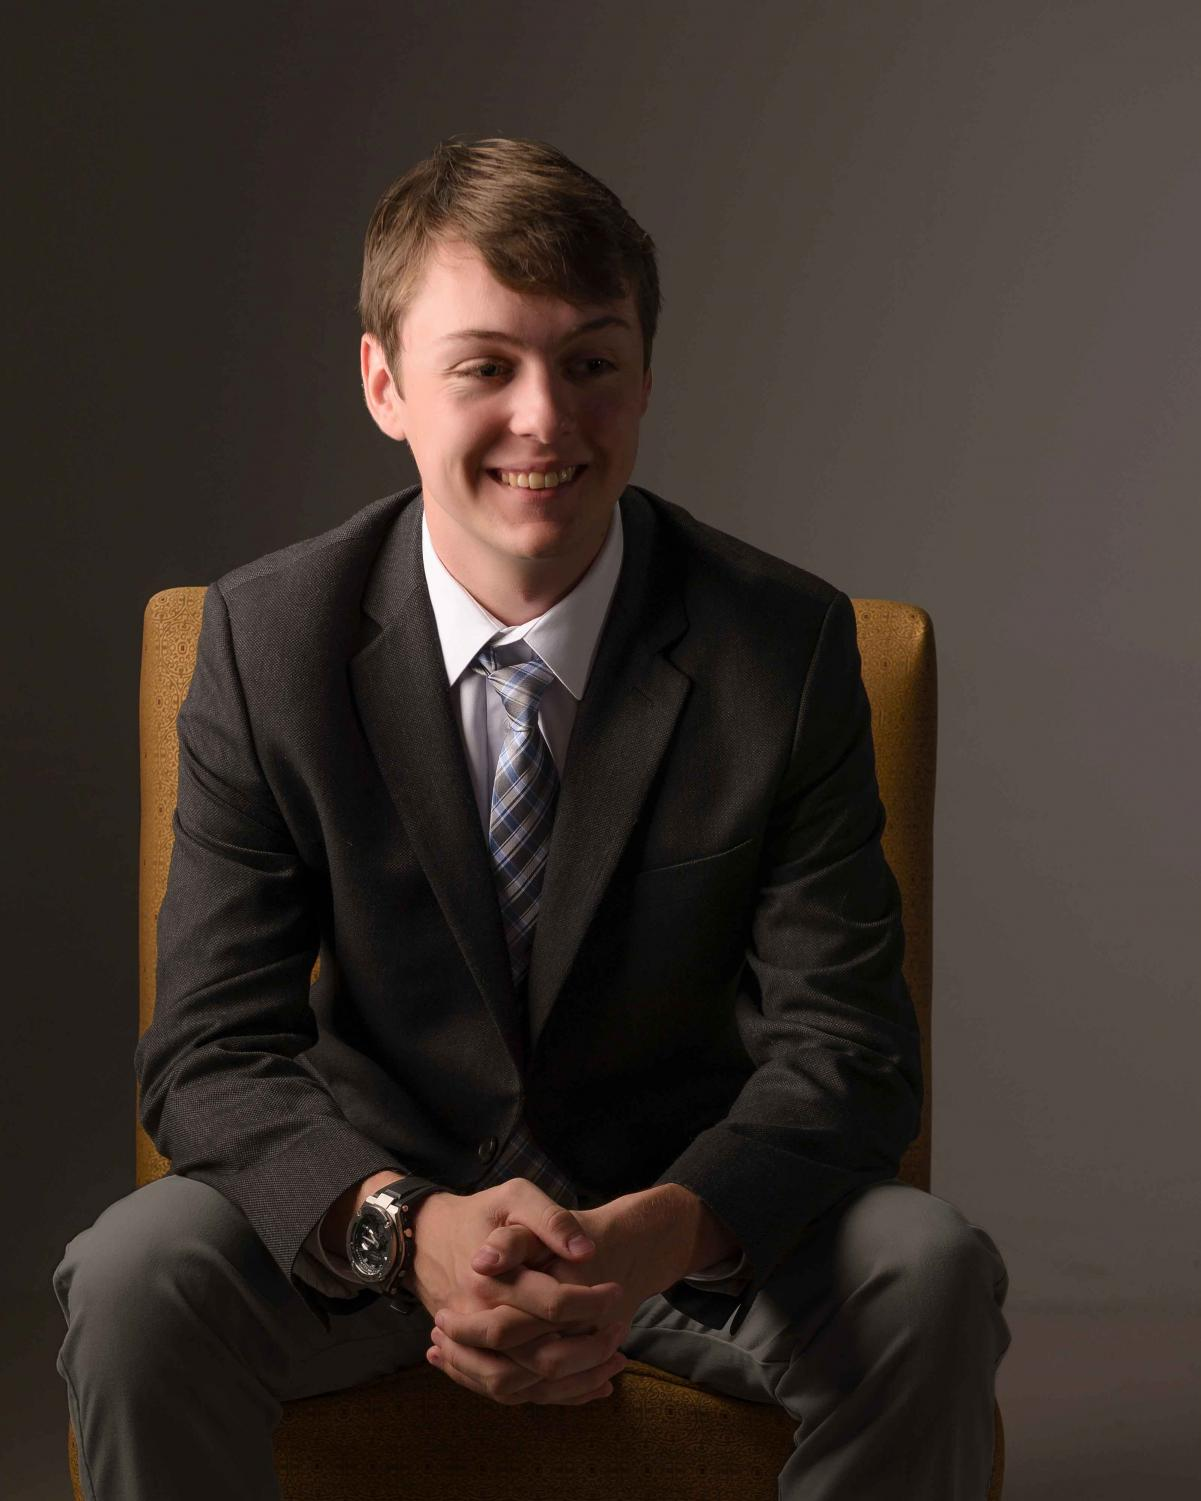 Owen St. Germain, Class of 2018, is studying engineering as an undergraduate at Boston University.